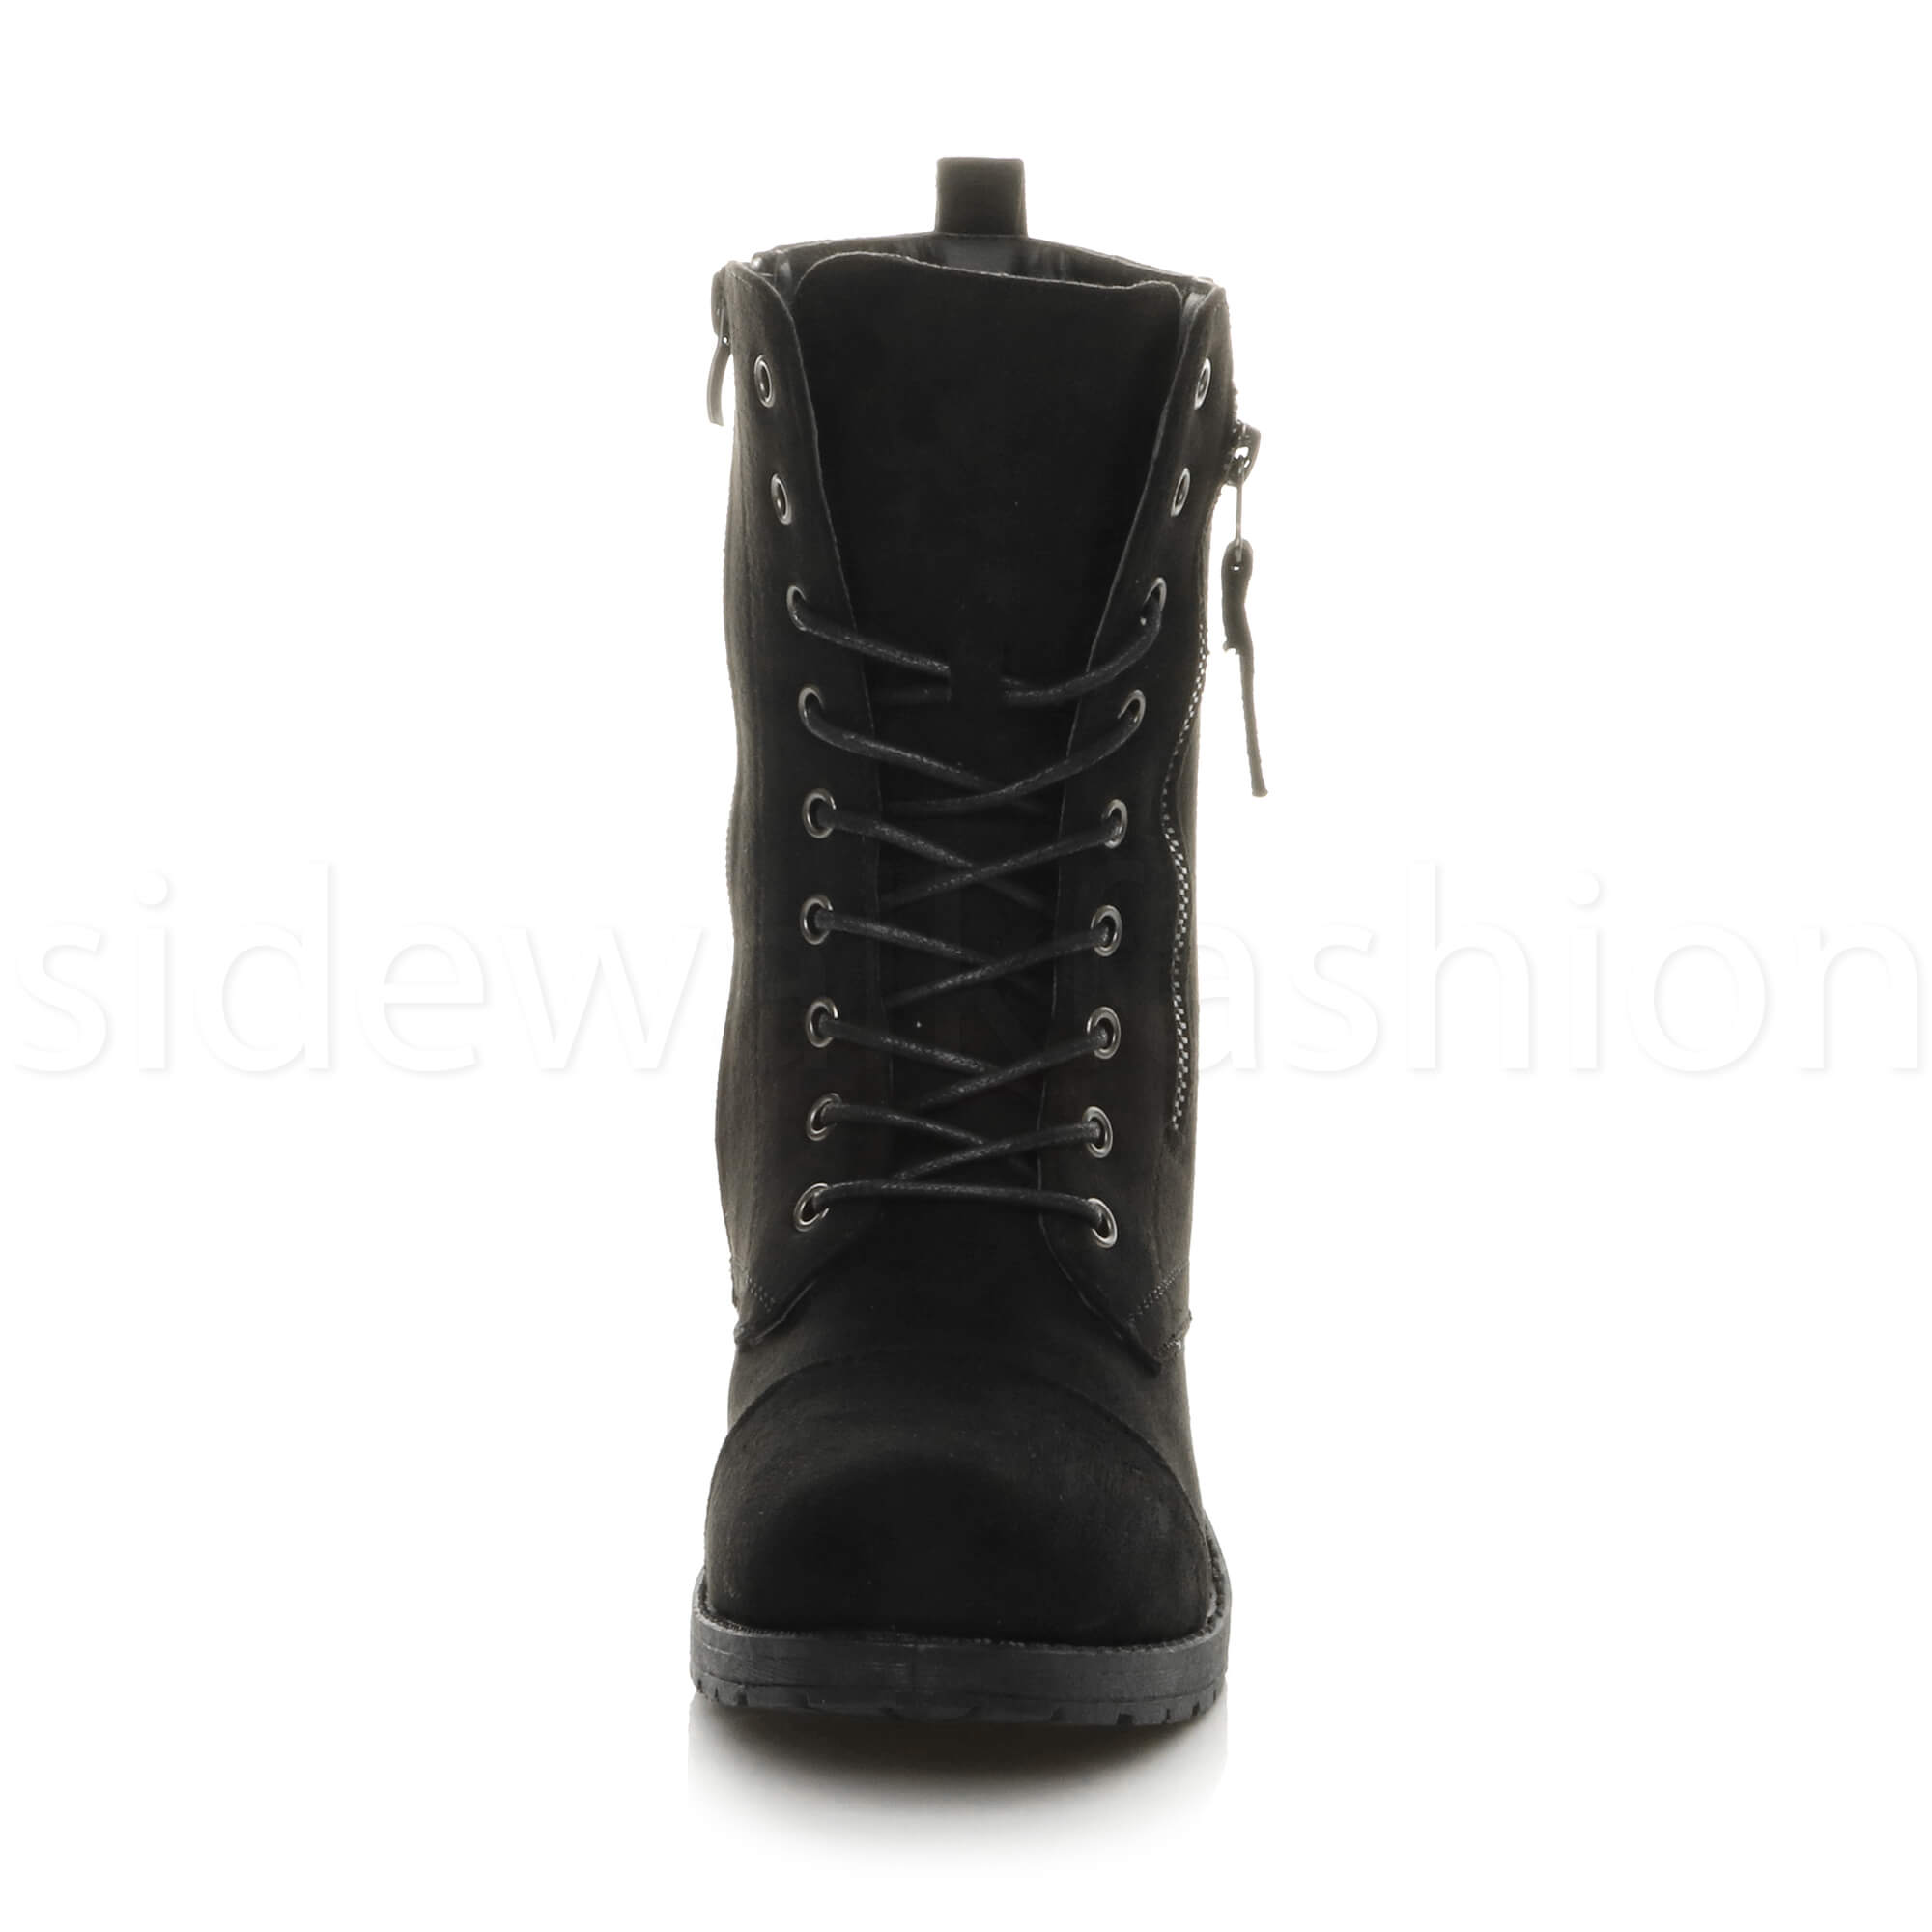 Womens-ladies-low-heel-flat-lace-up-zip-combat-biker-military-ankle-boots-size thumbnail 23